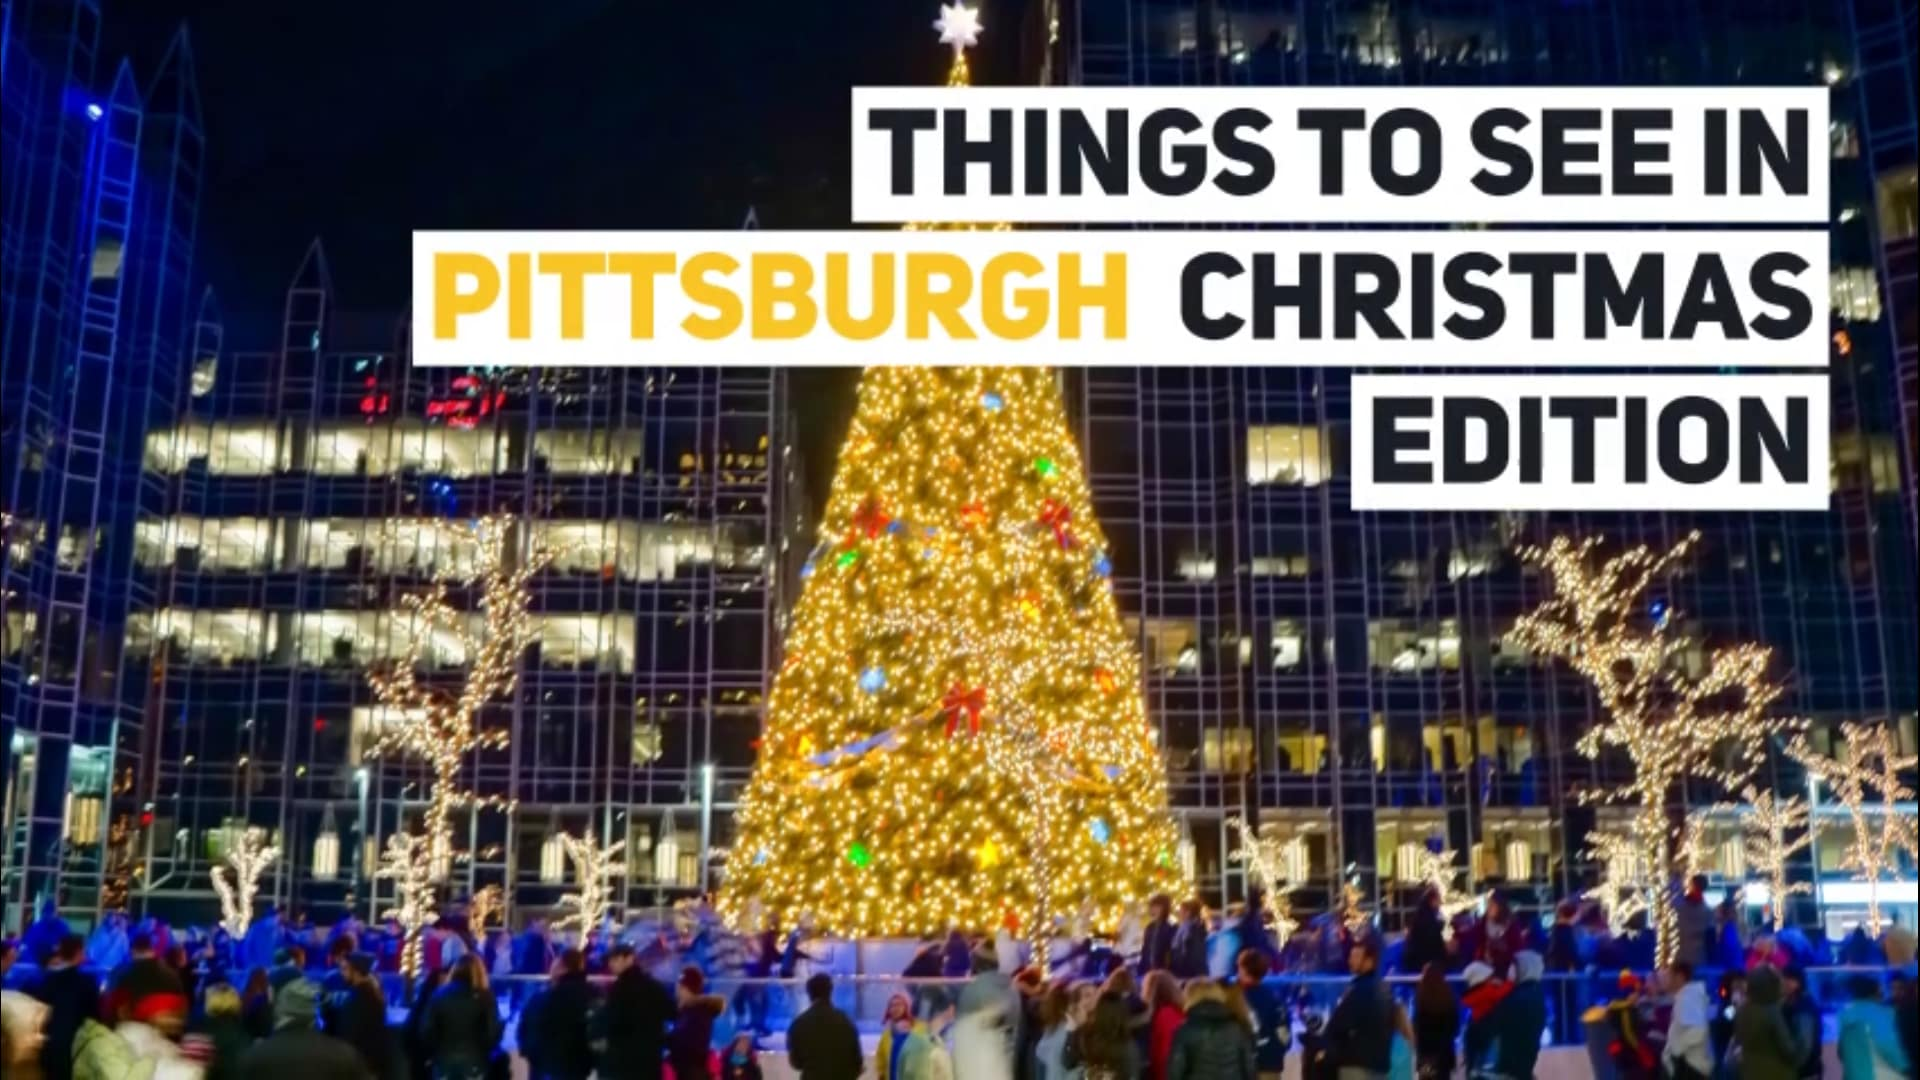 9 Must See Attractions During Christmas in Pittsburgh